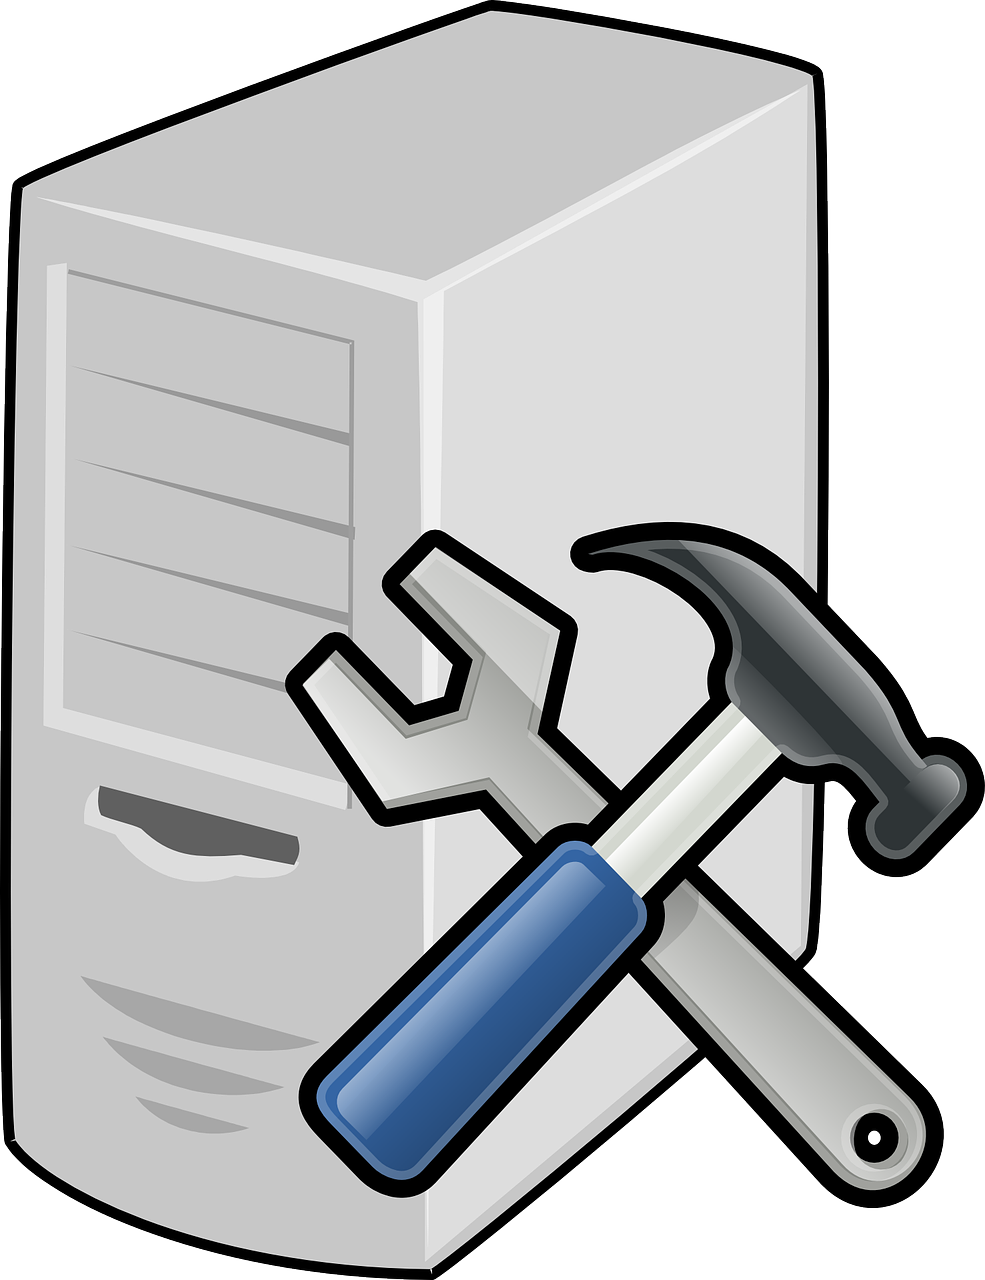 Computer Clip Maintenance Transparent Png Clipart Free Download